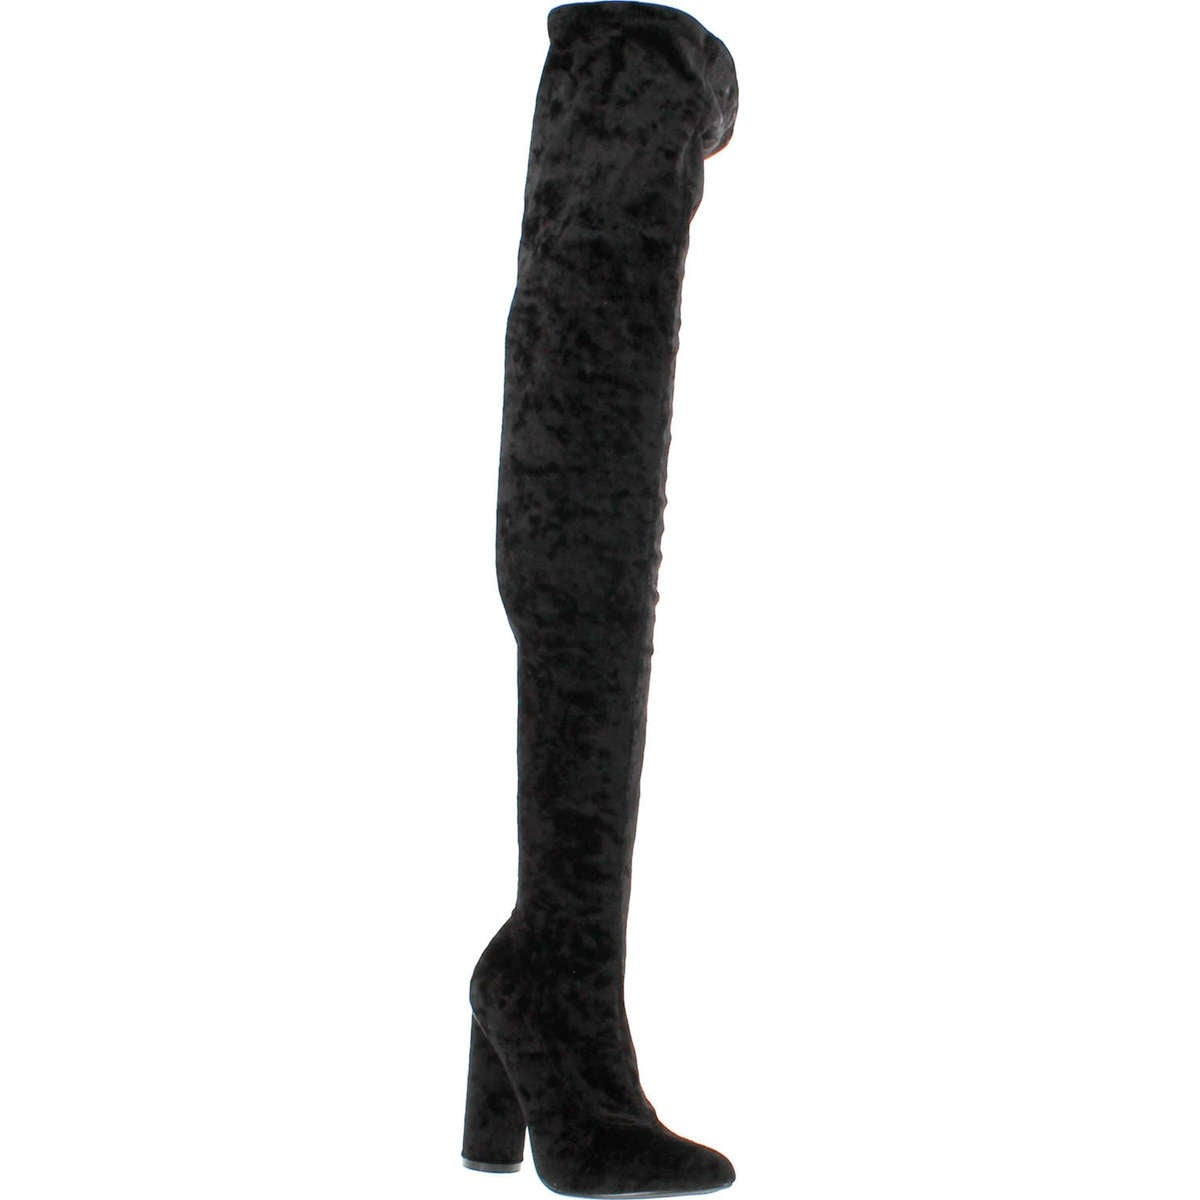 75a80752e7f Shop Cape Robbin Paw-27 Crushed Velvet Stretchy Pointy Toe Thigh High Over  Knee Block Heel Boot - Black - Free Shipping On Orders Over  45 - Overstock  - ...